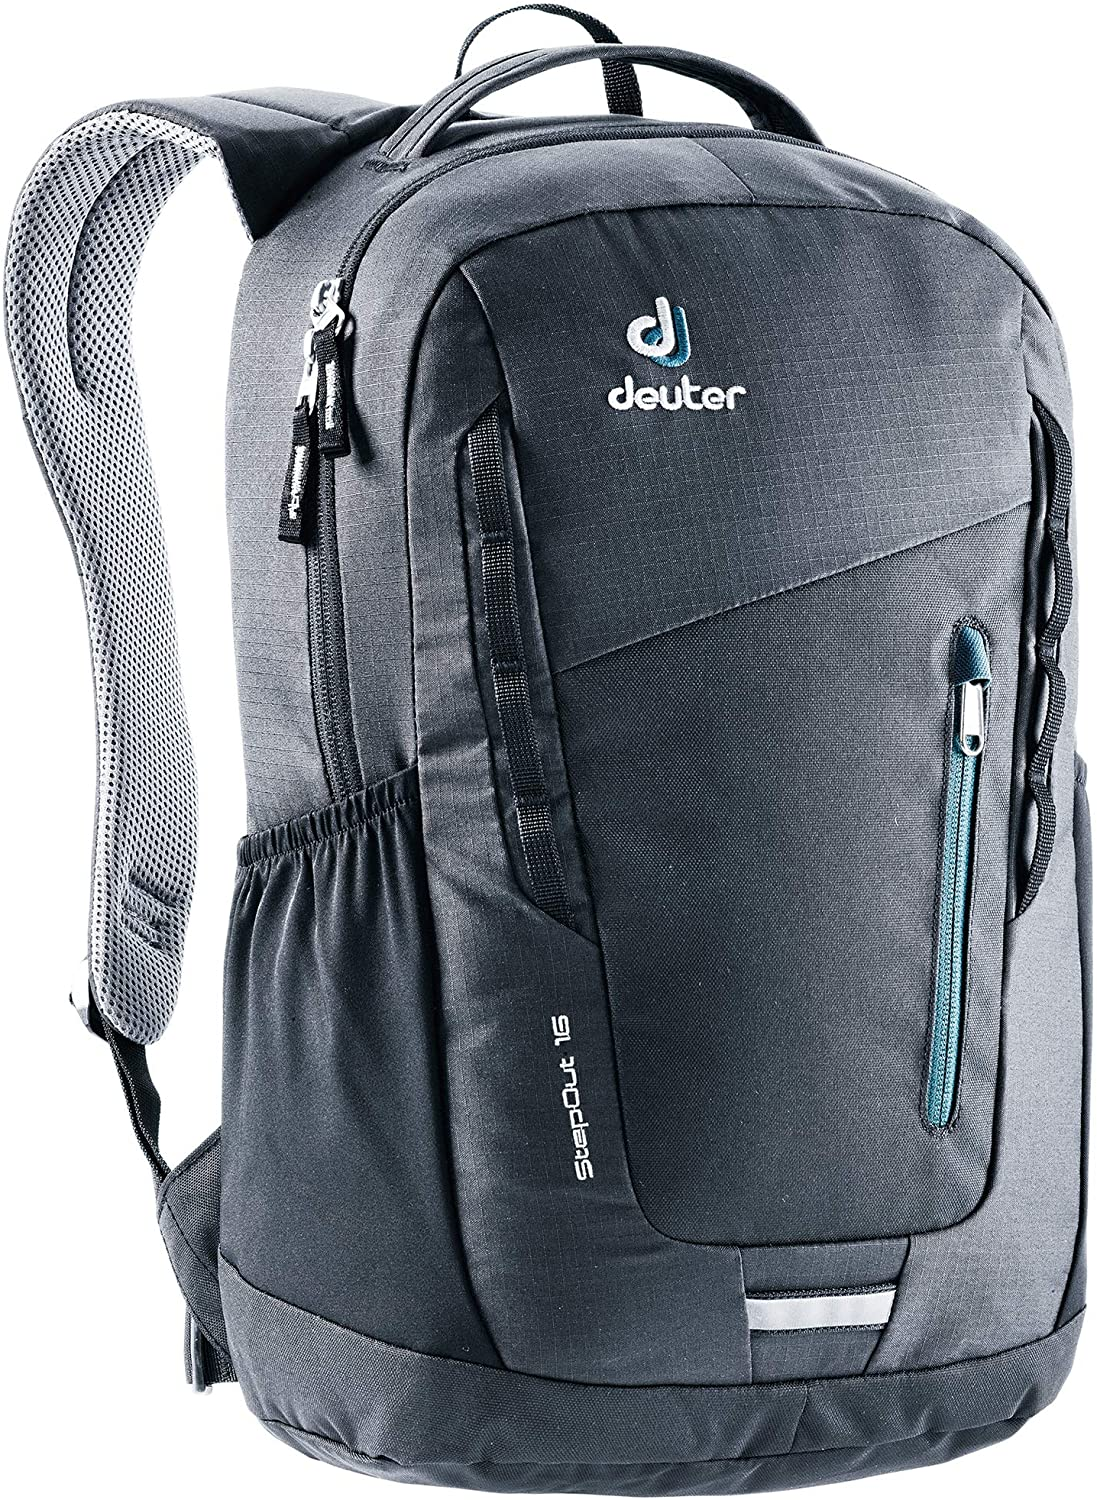 Deuter StepOut 16 Men's 16 Liter Backpack for Business, Travel, and Everyday